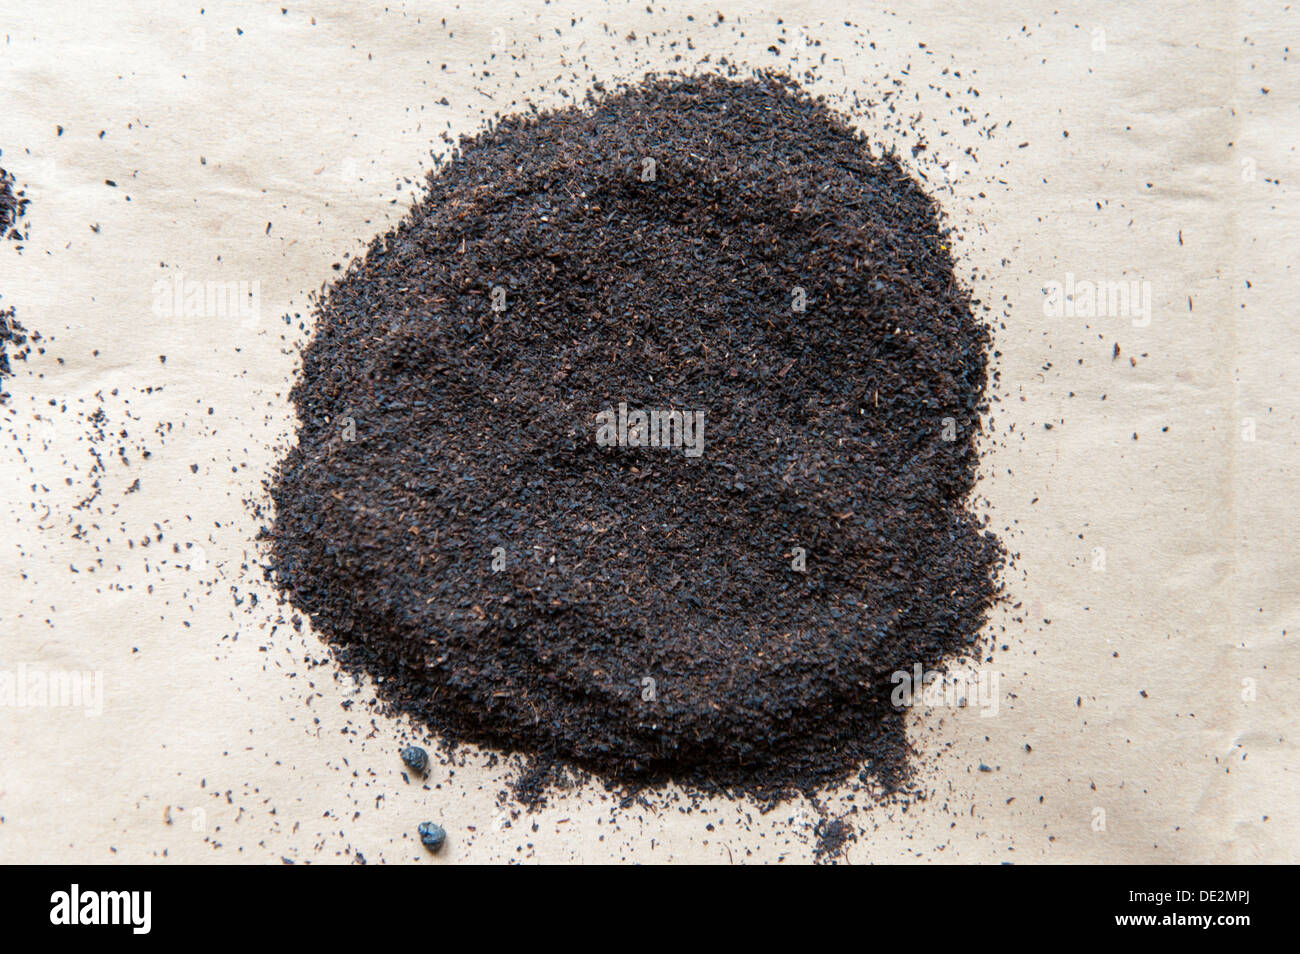 Black Tea, Dust, Ceylon, Gampola, Kandy Distrikt, Zentralprovinz, Sri Lanka Stock Photo